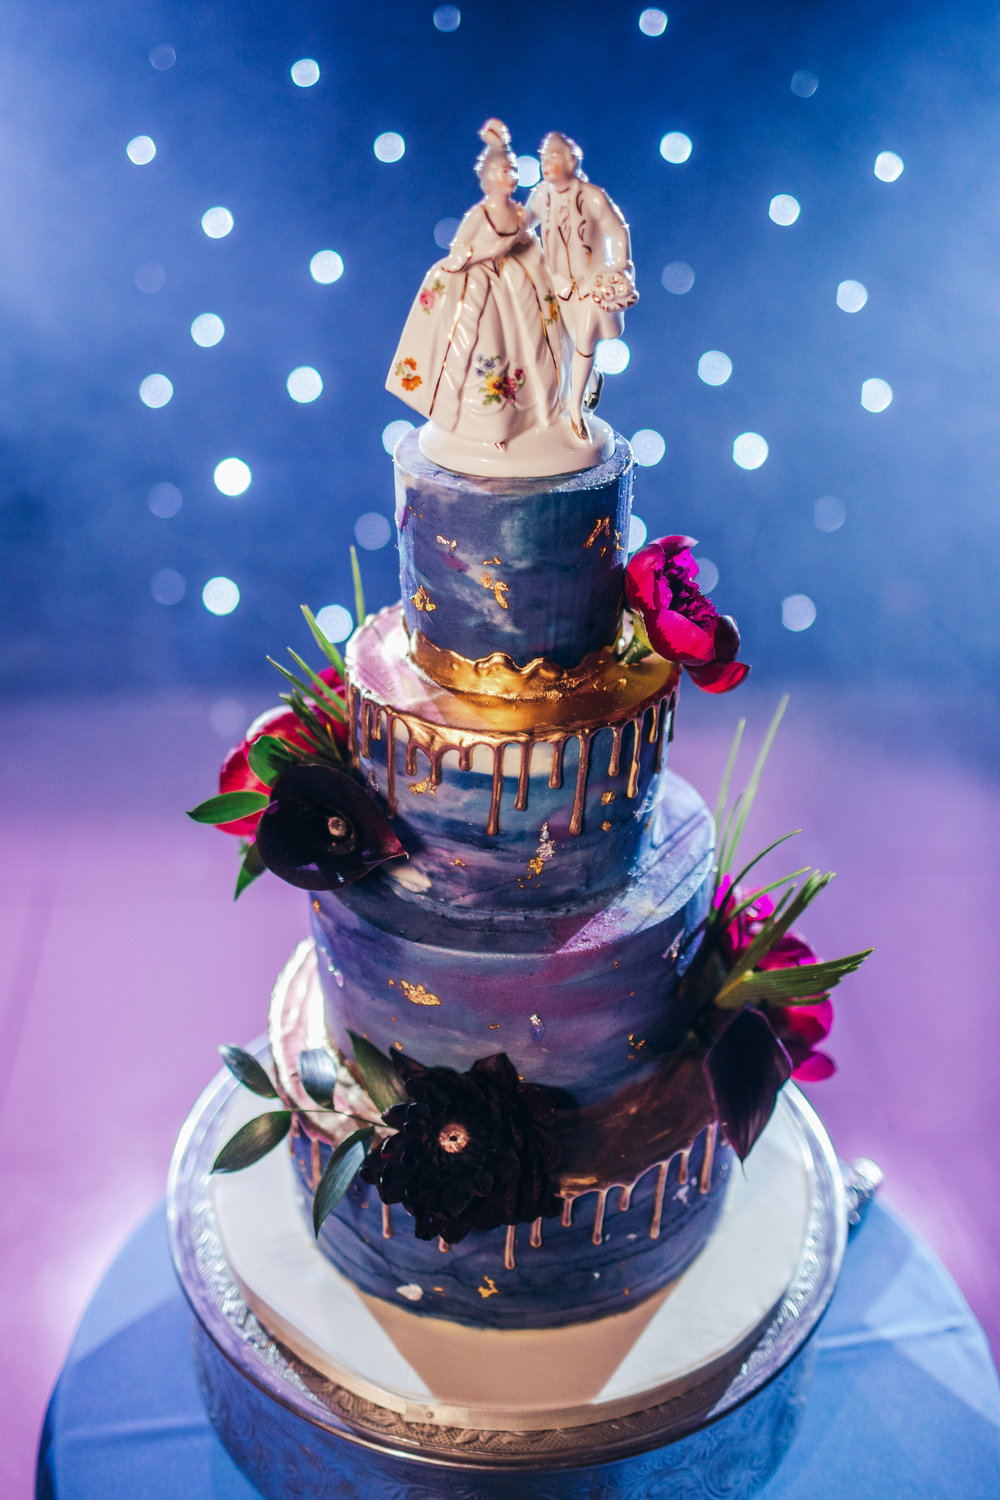 Beautiful handmade cake at Carlowie Castle in Edinburgh, Scotland